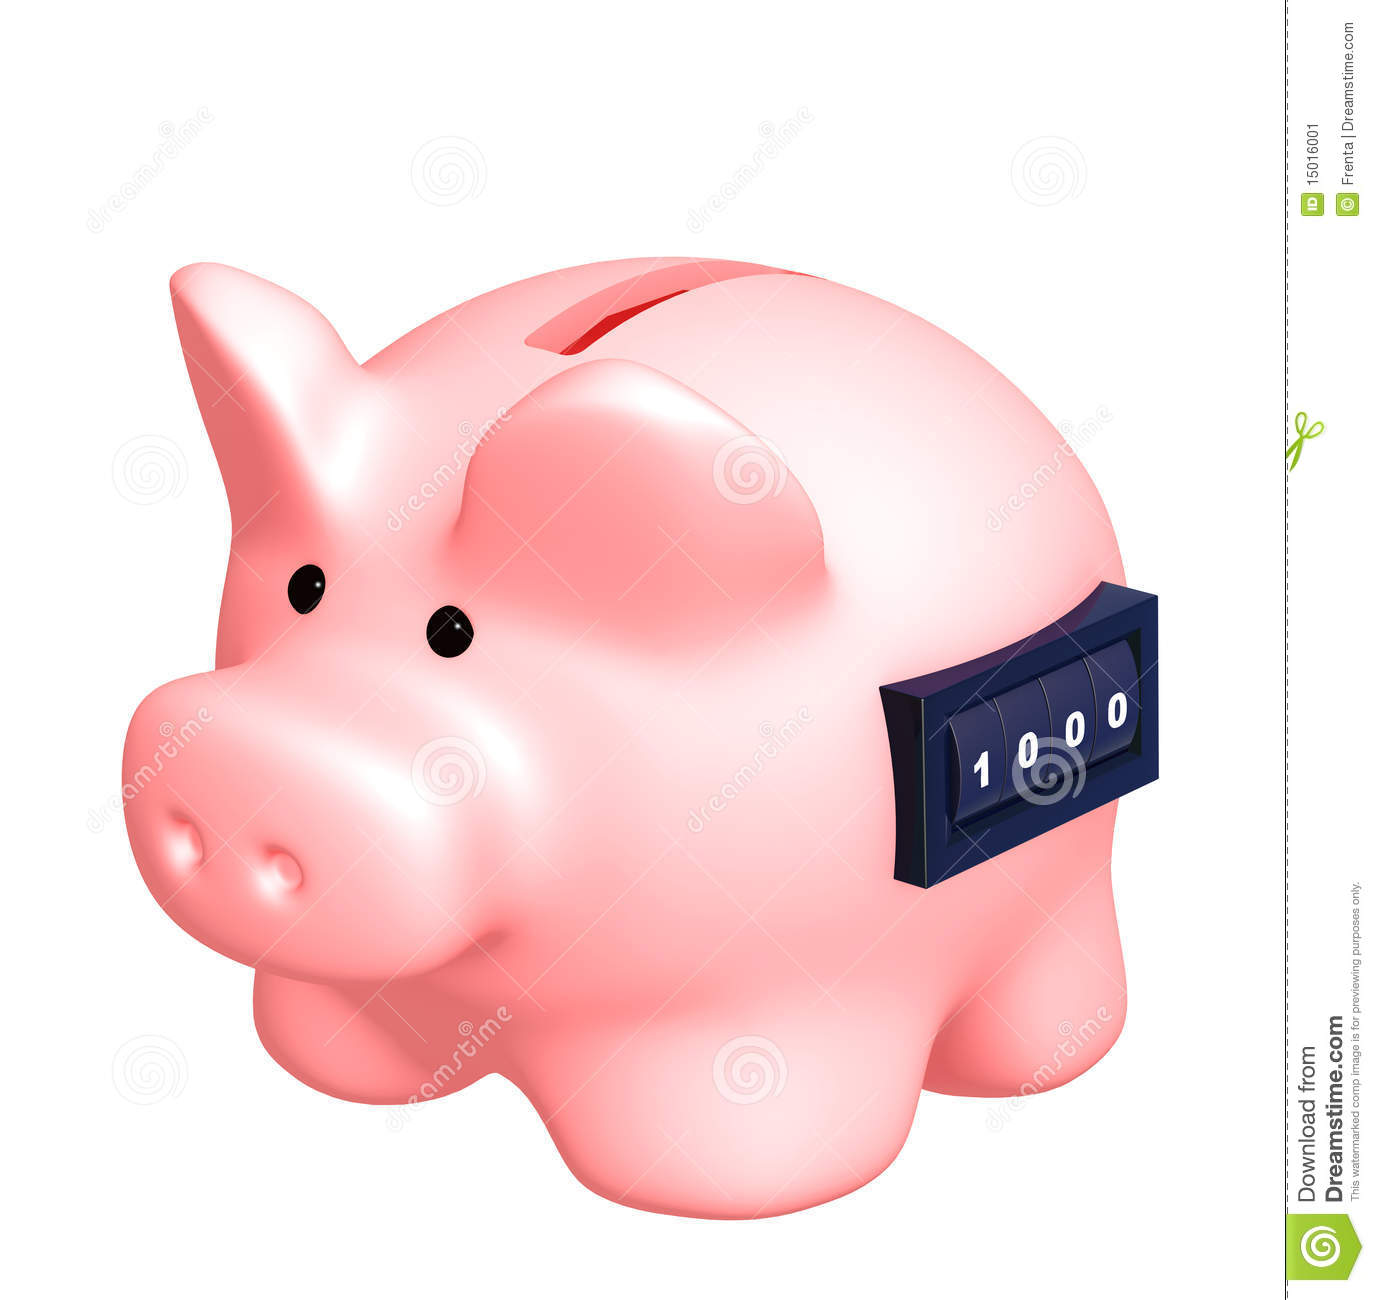 Piggy Bank With Counter Piggy Bank Stock Image Image 15016001